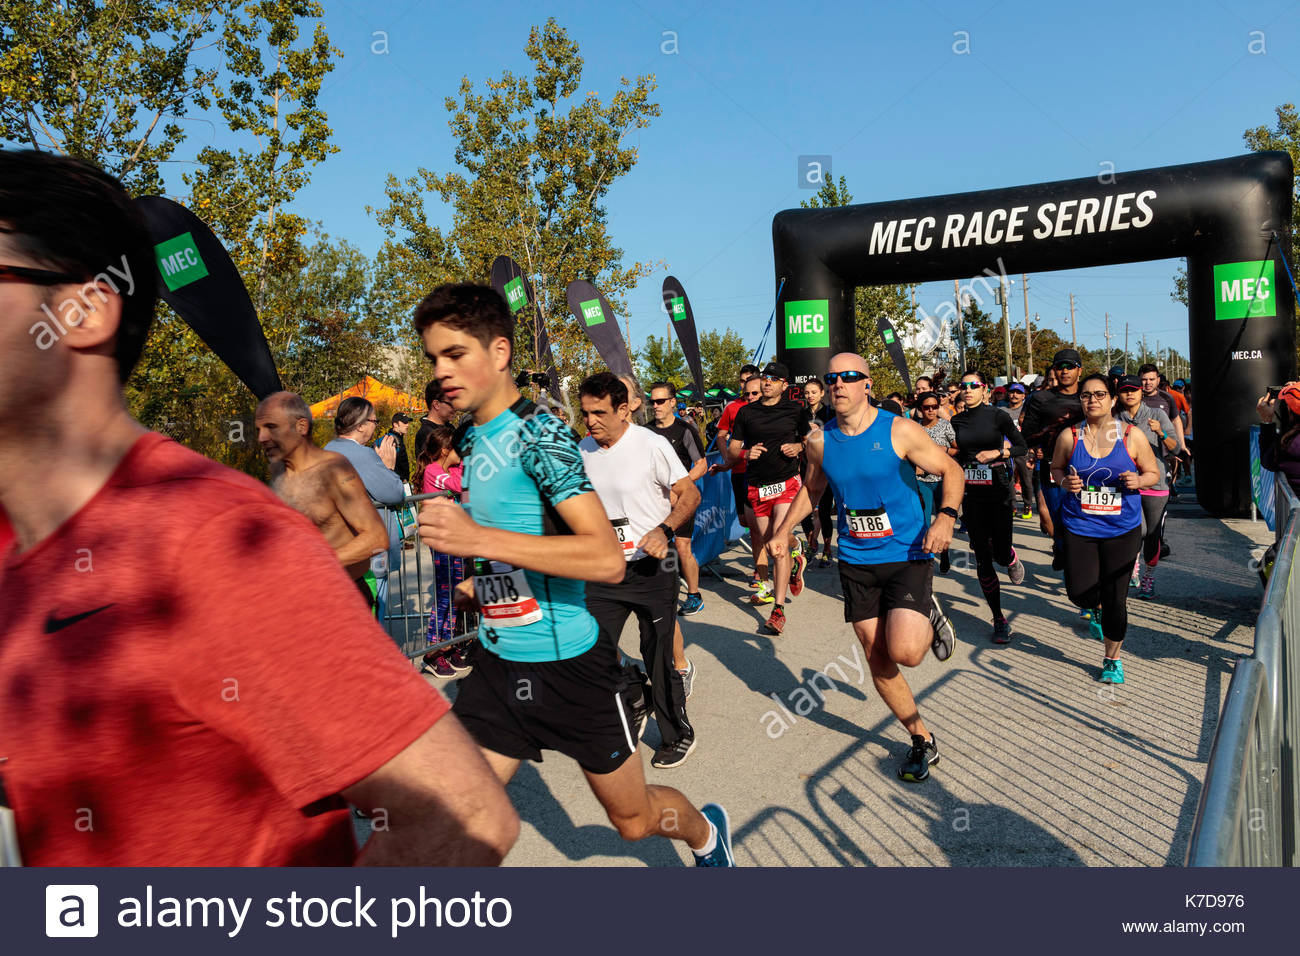 Mec Race series runners at start in Tommy Thompson Park In Toronto Ontario Canada - Stock Image